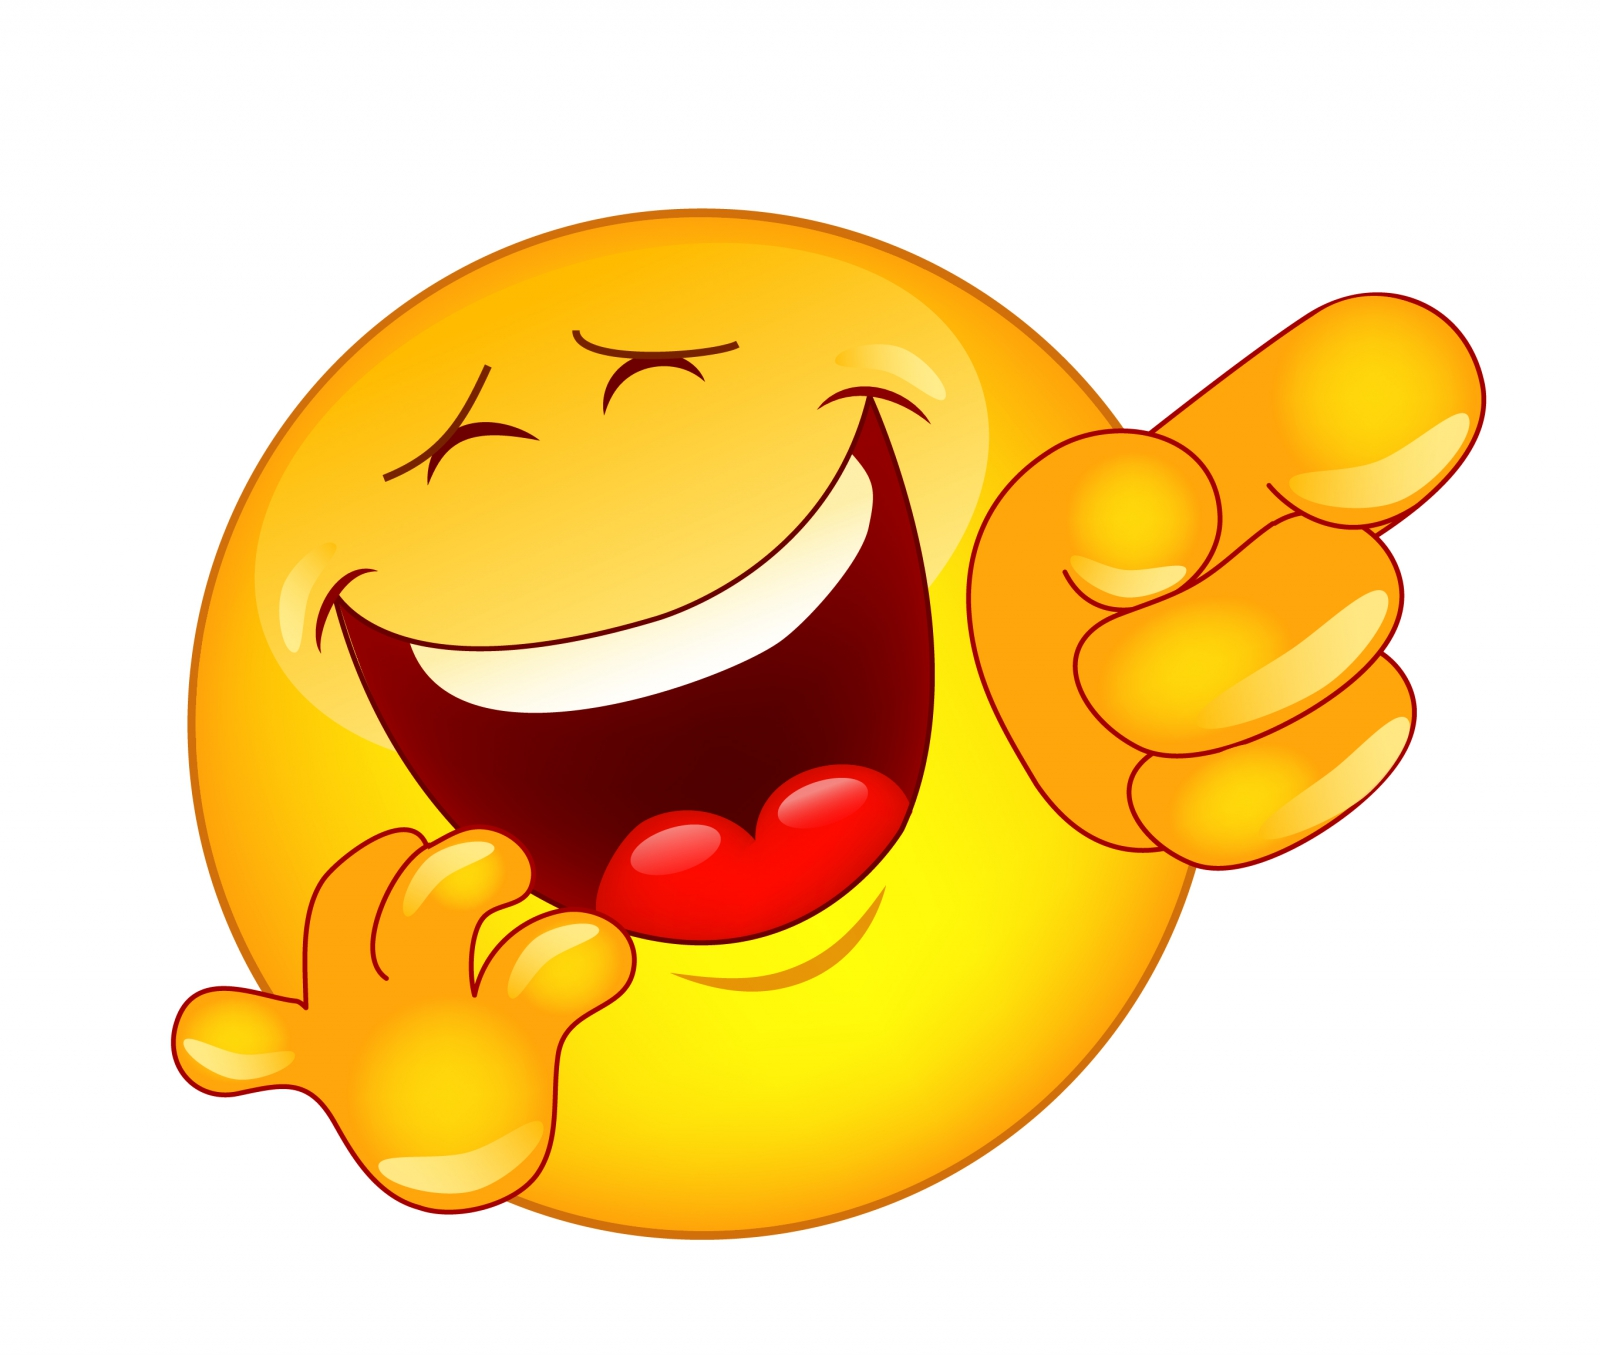 Clipart laughing face clipart library stock Free clipart laughing face - ClipartFest clipart library stock